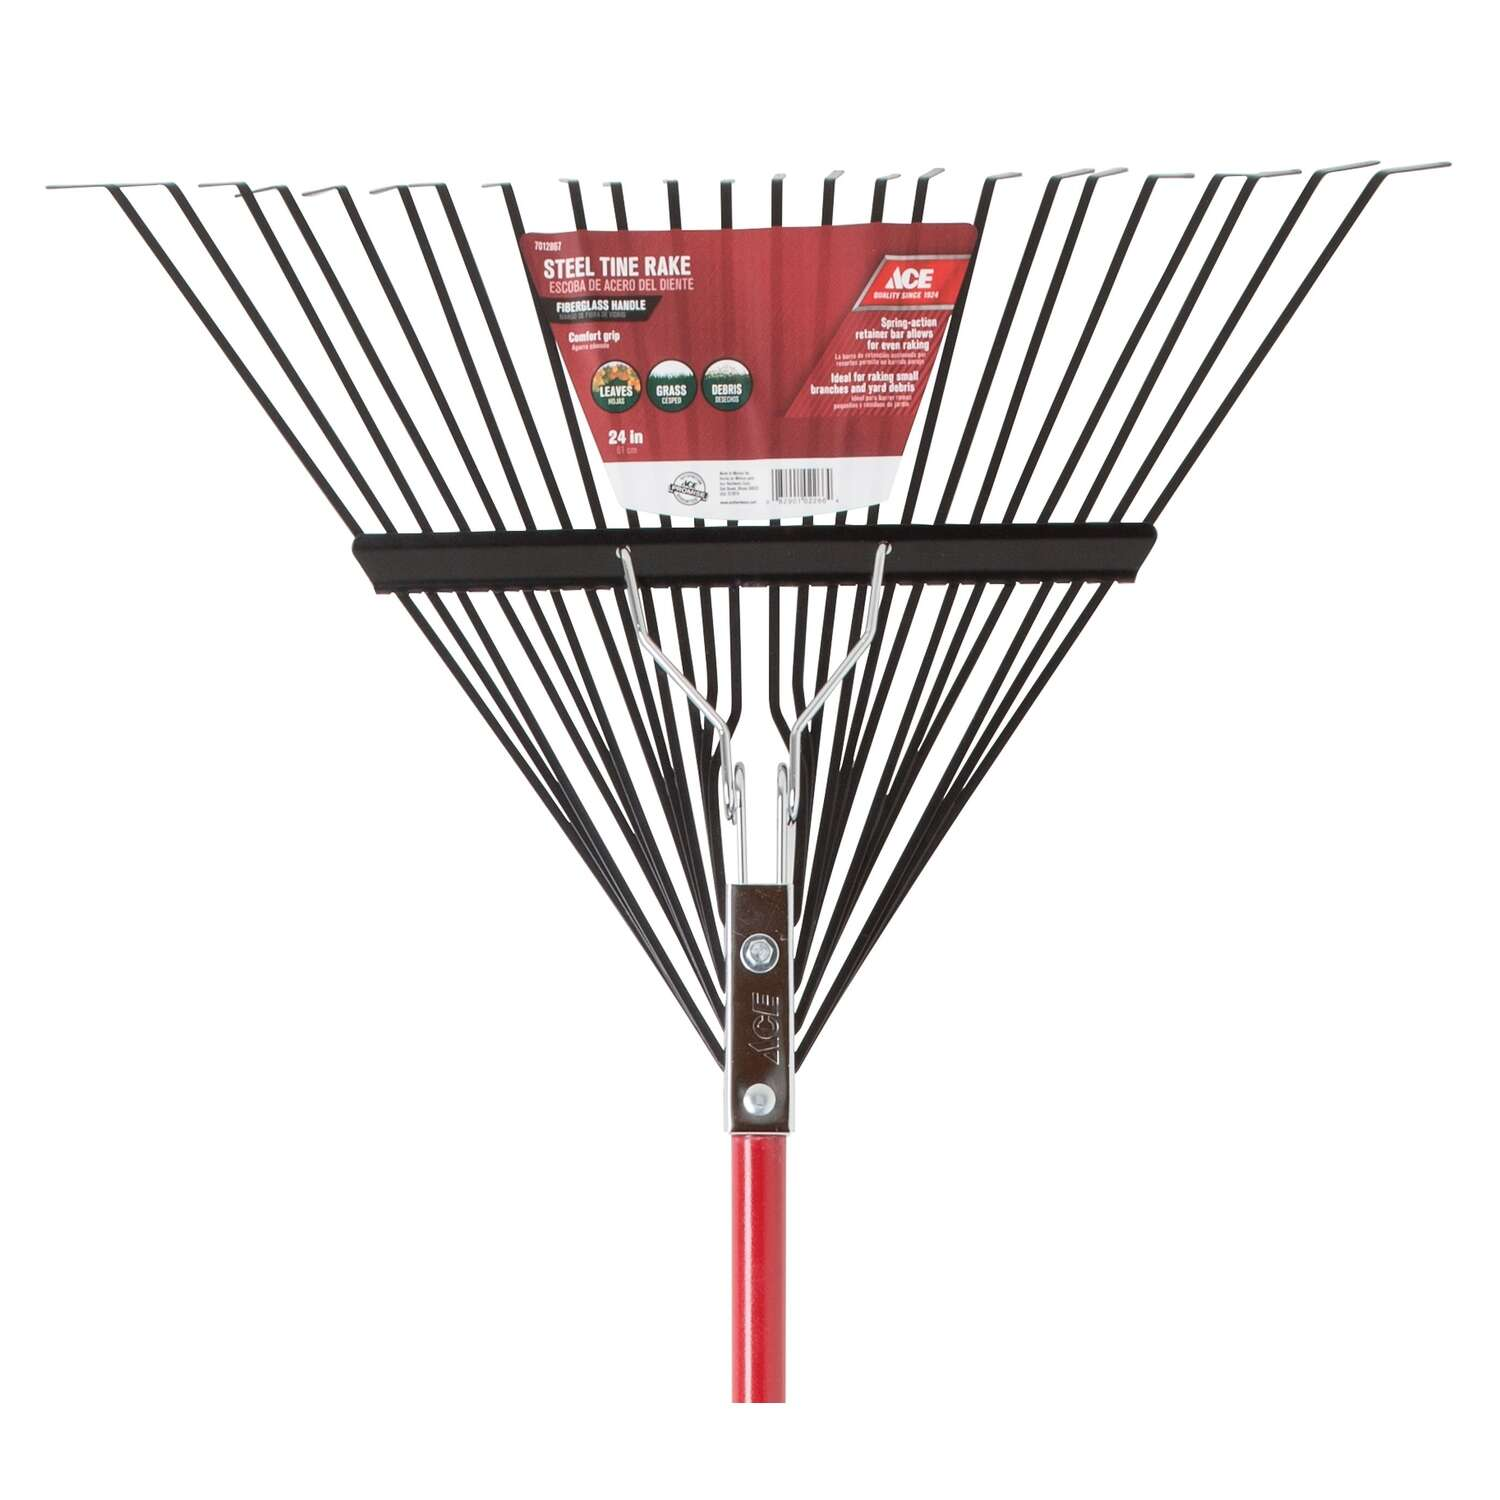 Ace  65 in. L x 24 in. W Steel  Rake